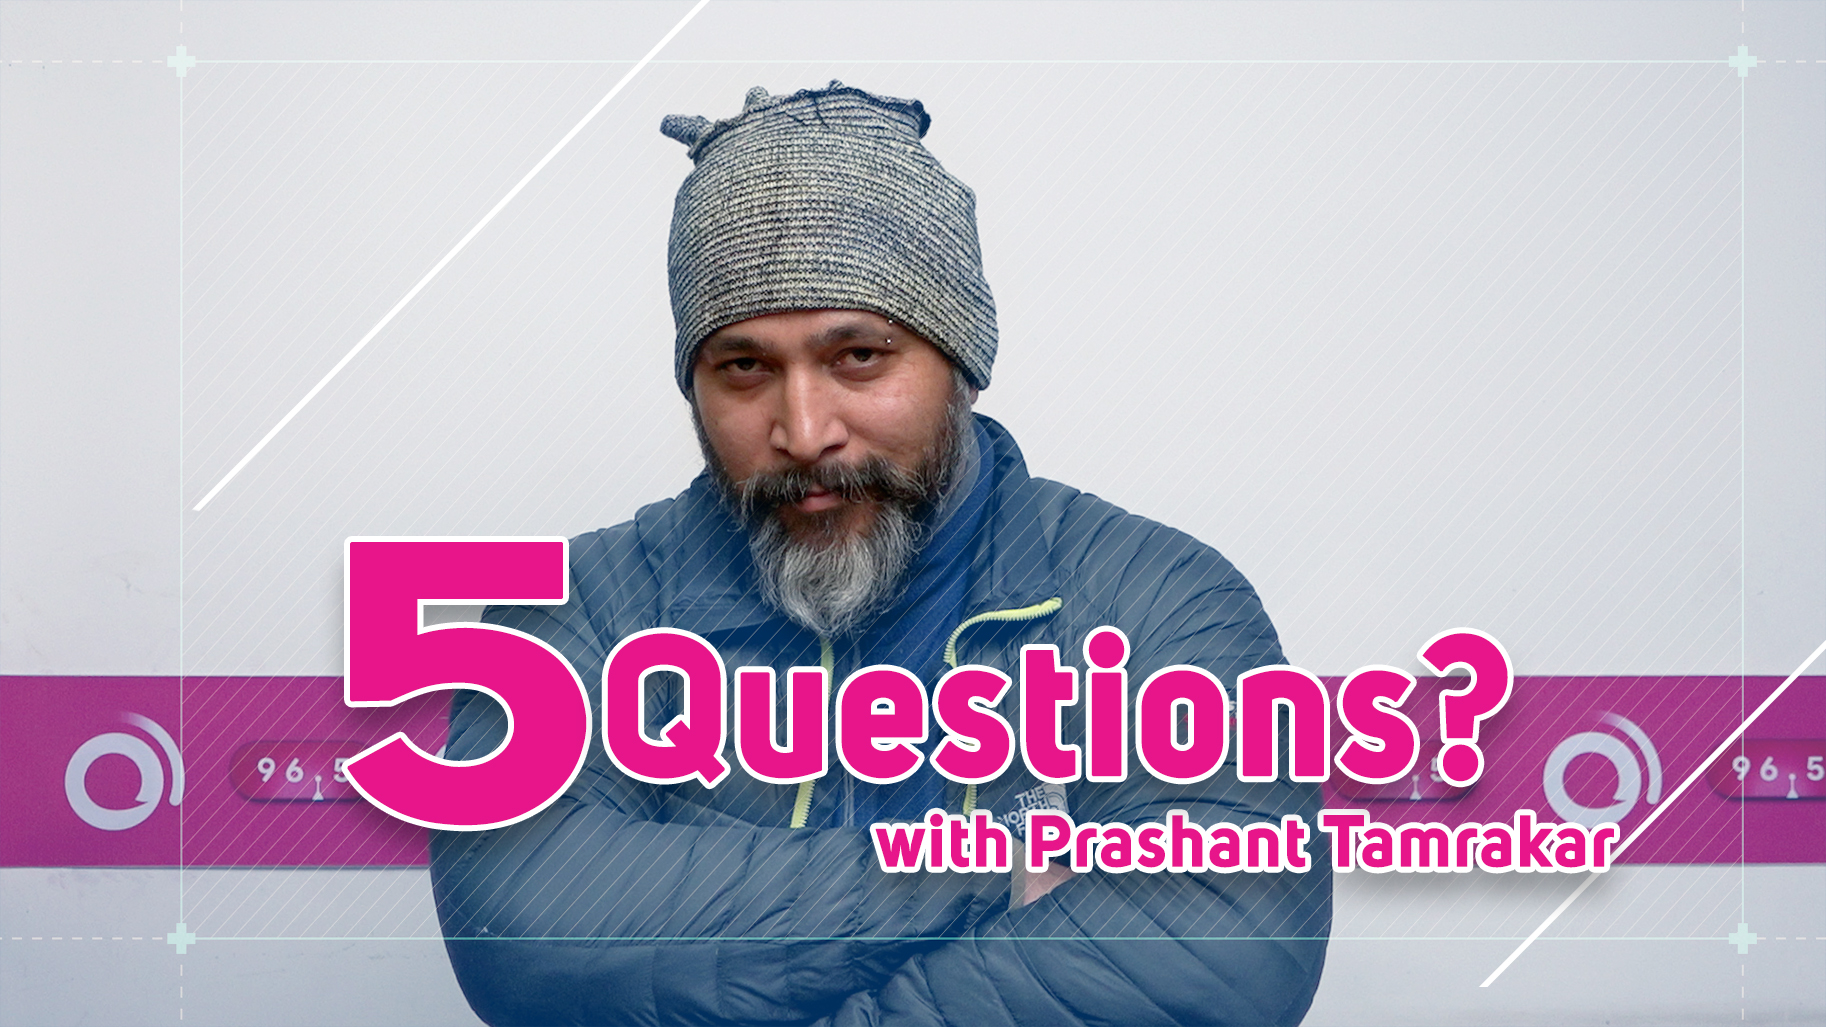 Model & Actor | Prashant Tamrakar | Cast member - CAPTAIN | 5 Questions